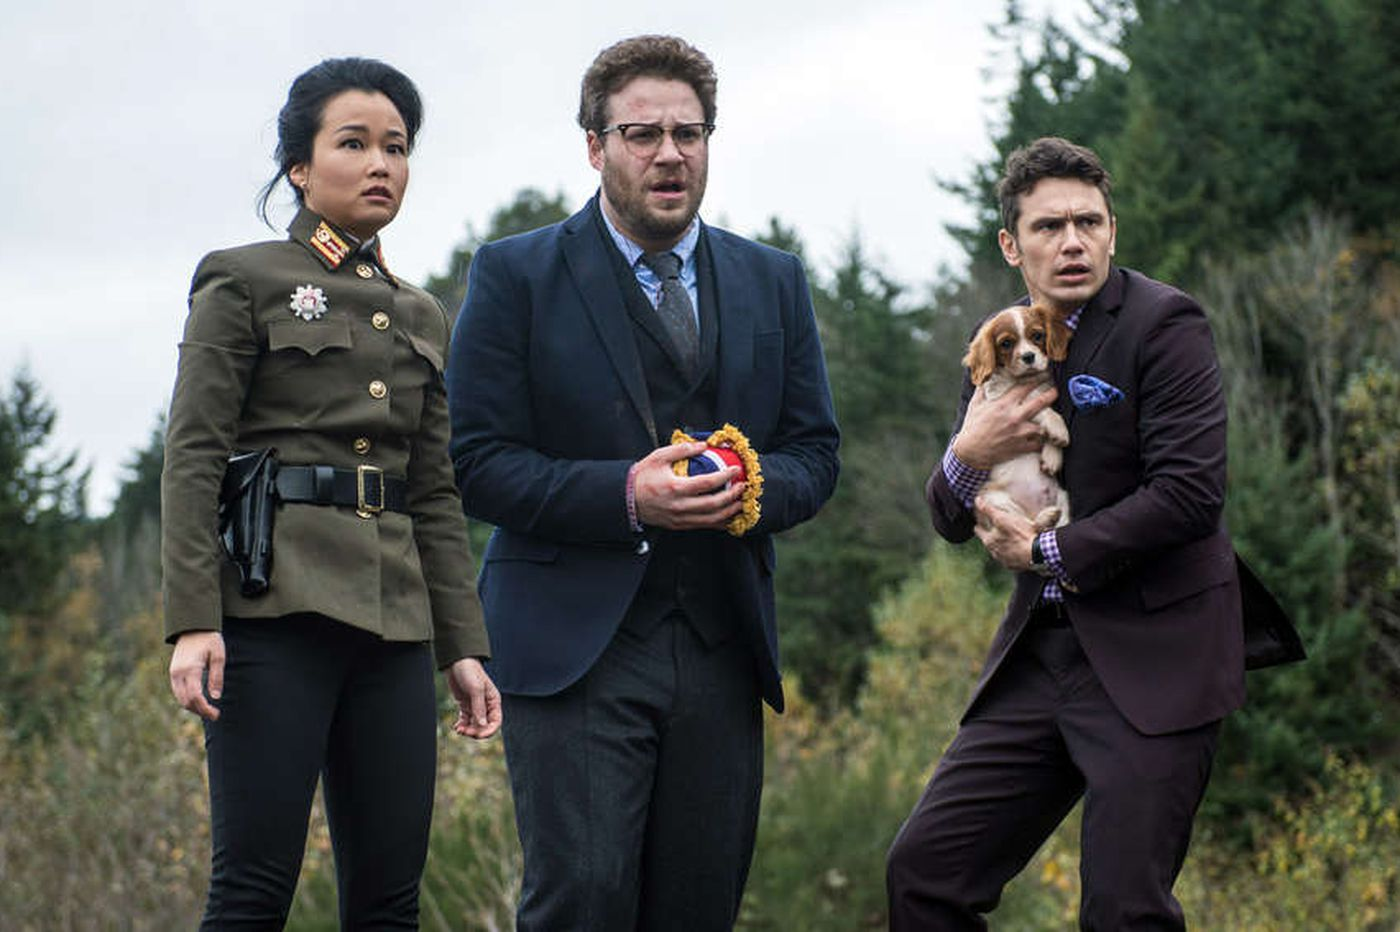 Some U.S. theaters to show 'The Interview'